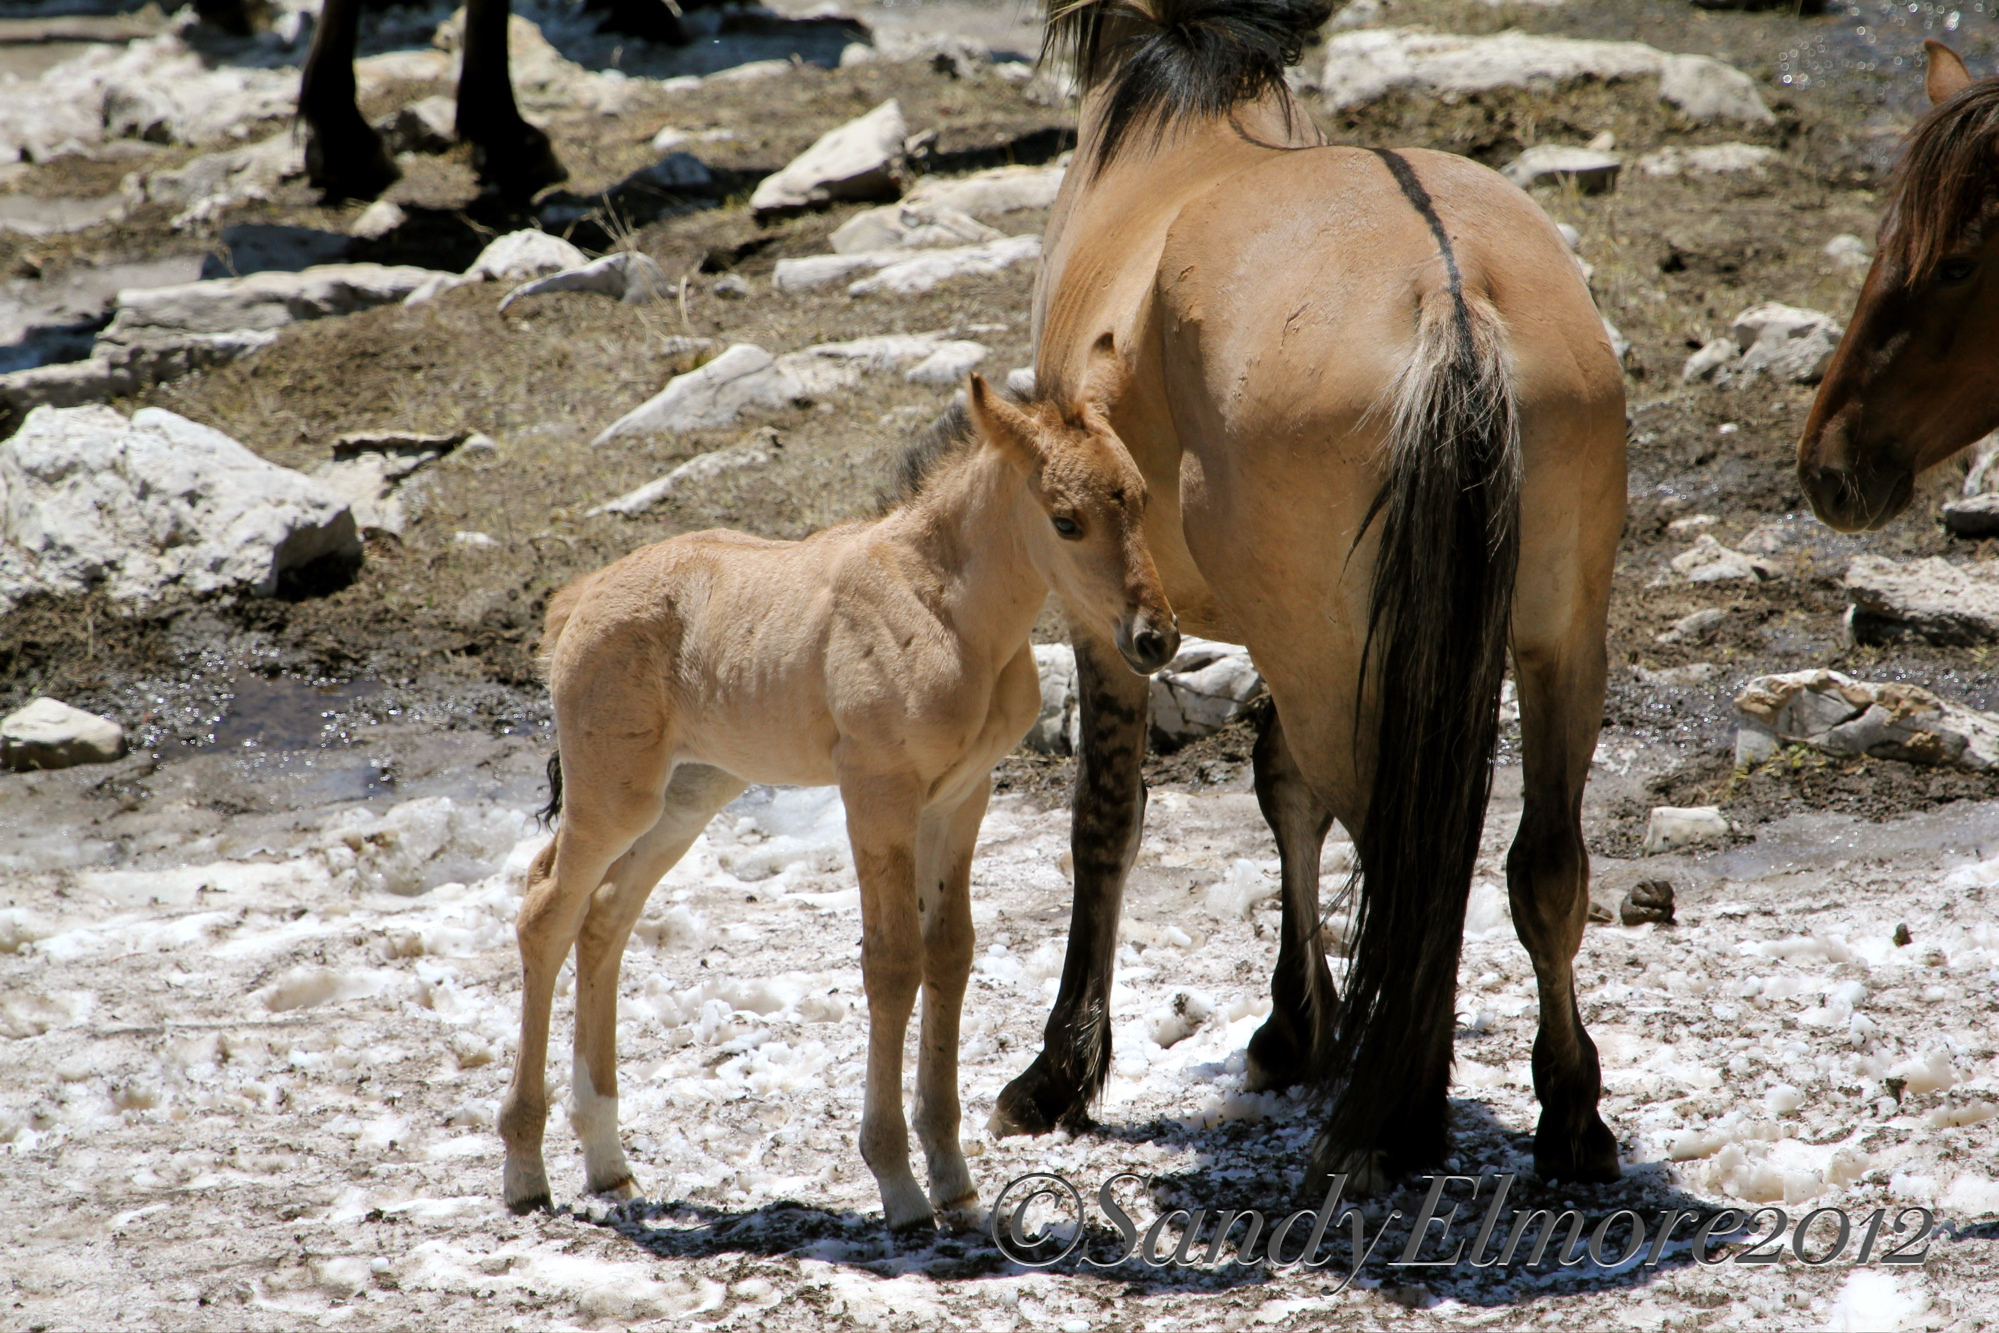 Kaycee and her new filly, June 18, 2012